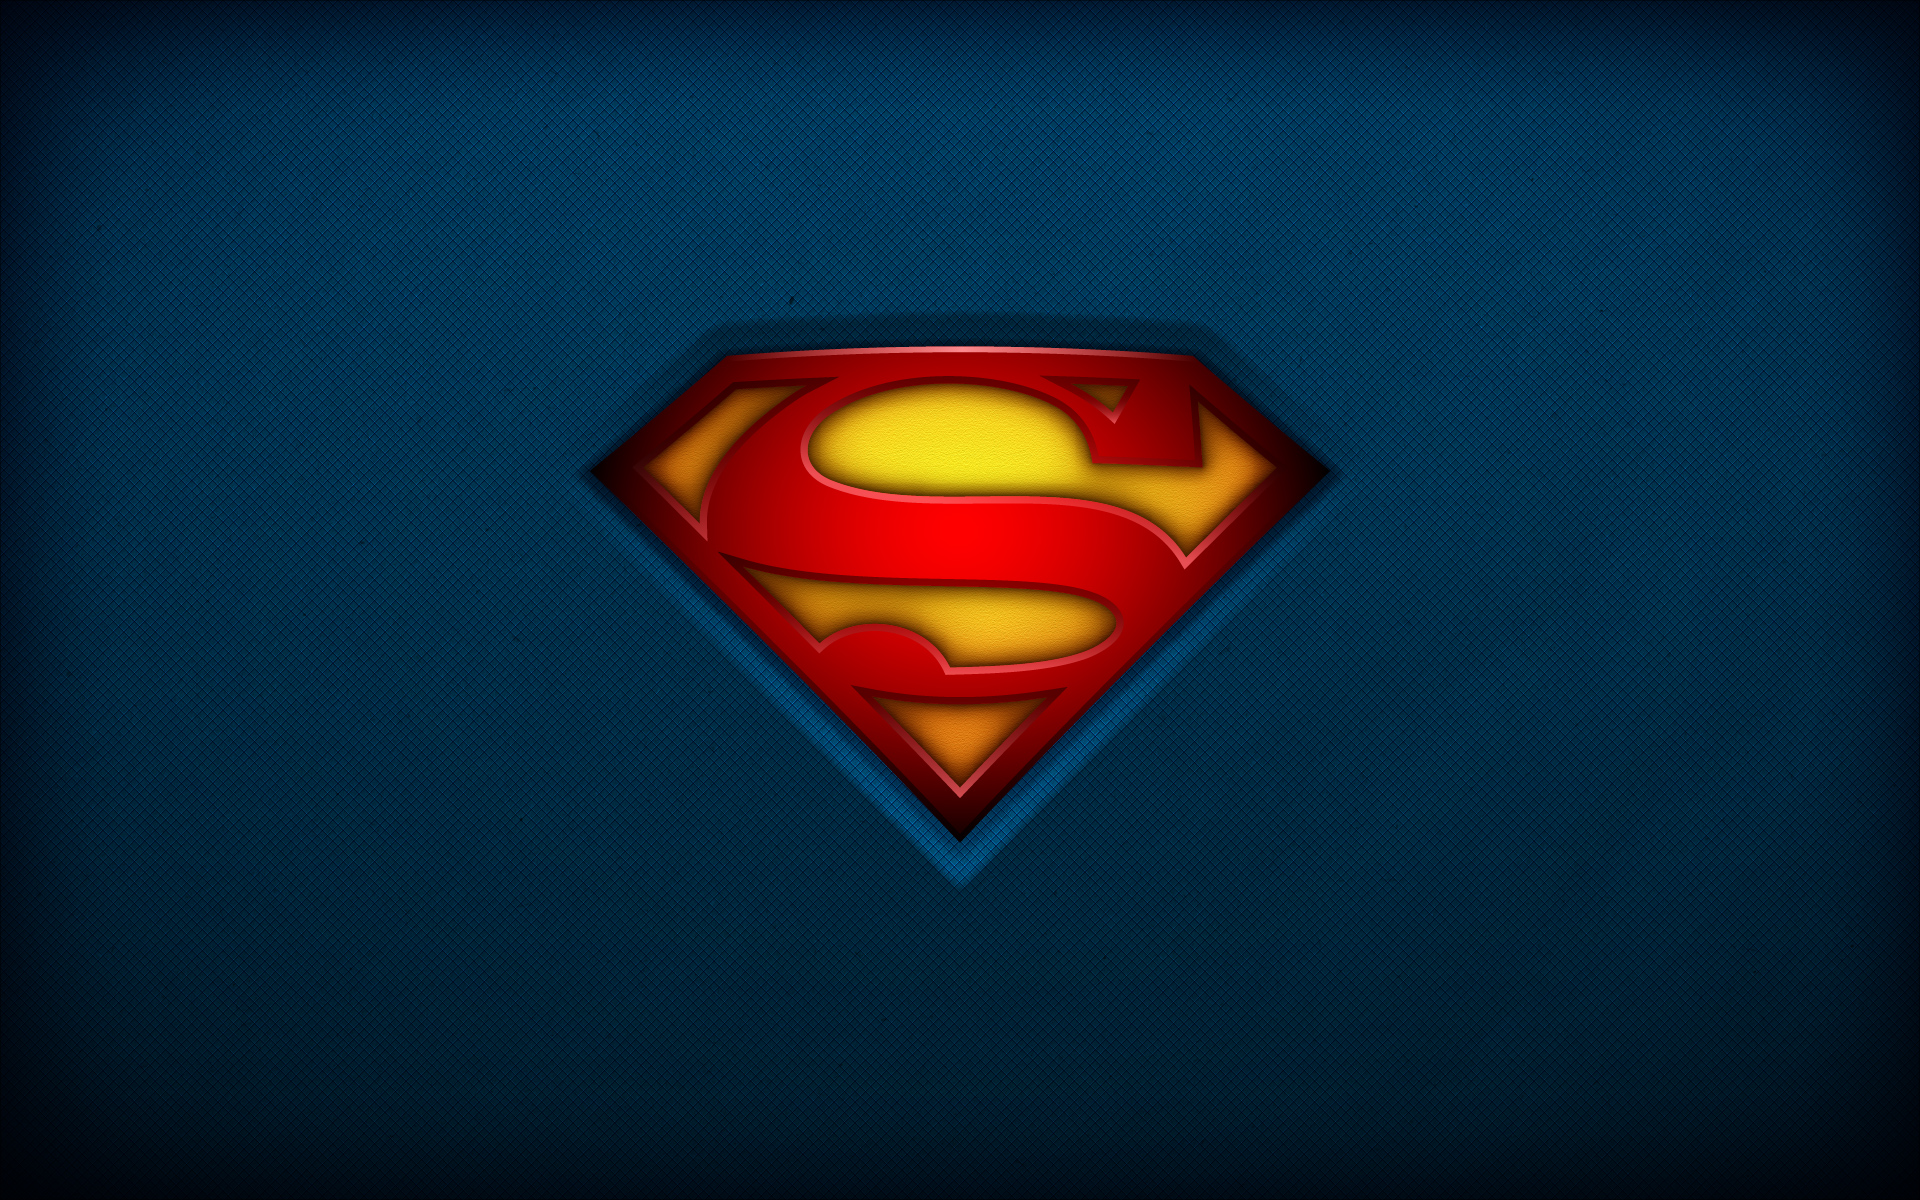 Superman 844.31 Kb